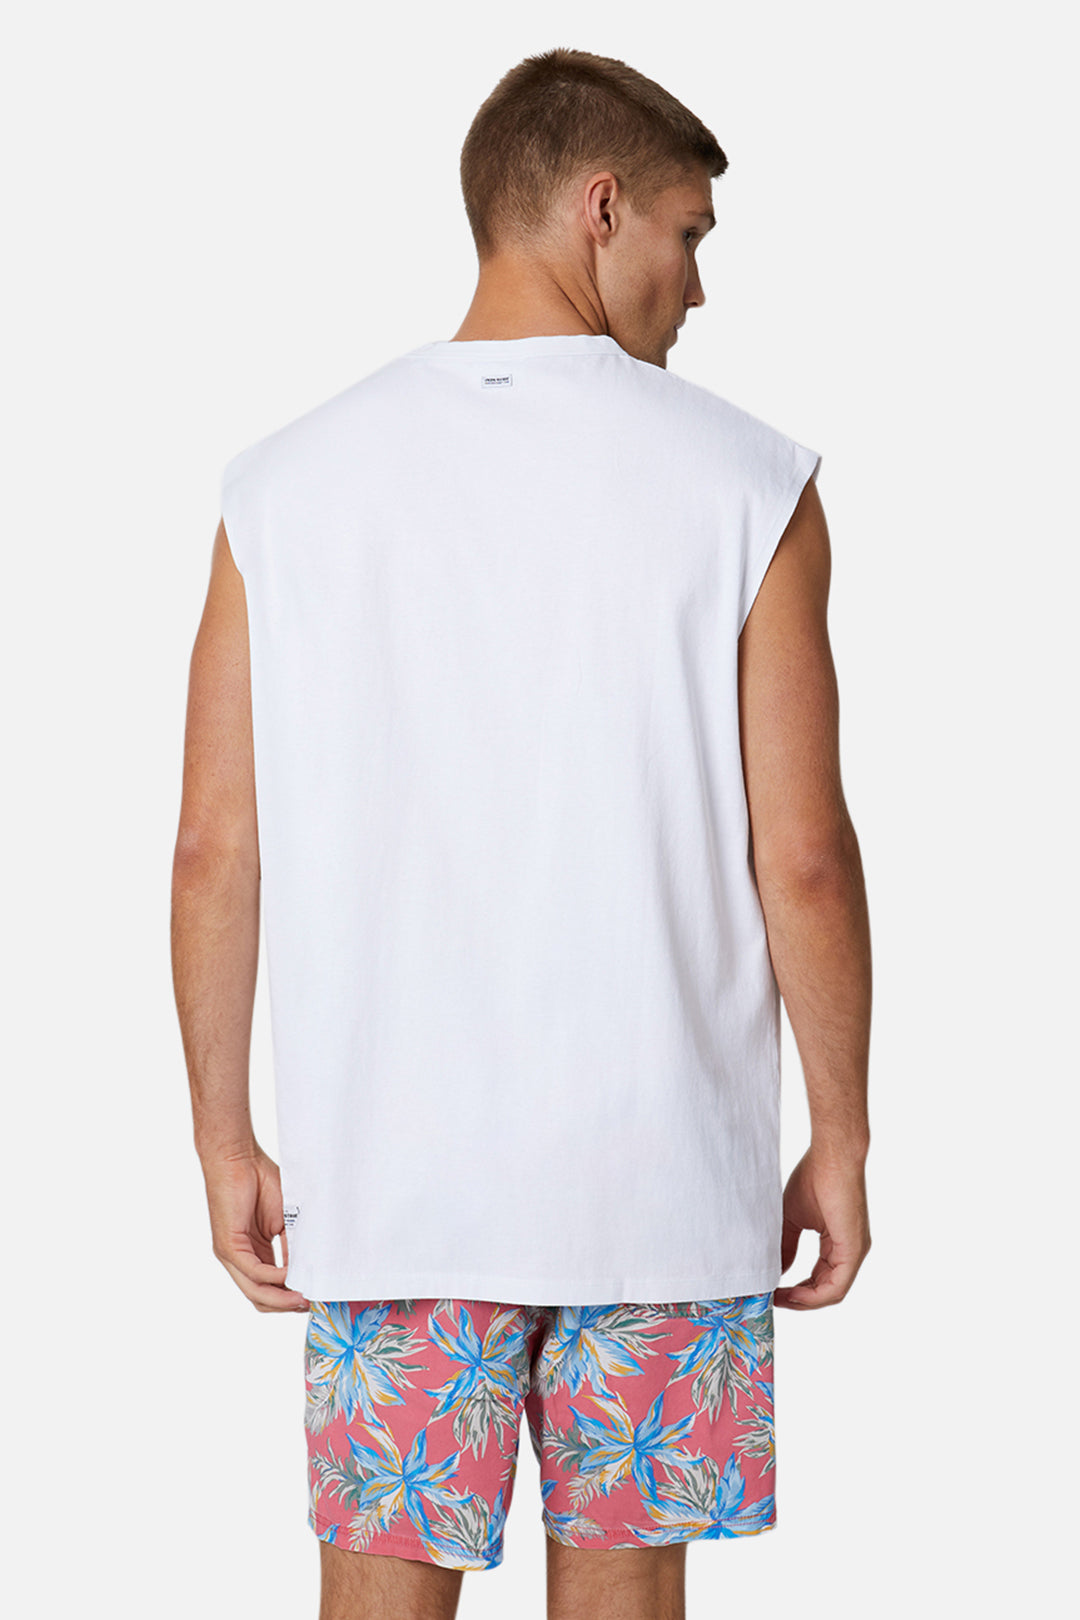 The Del Sur Sleeveless Tee - White